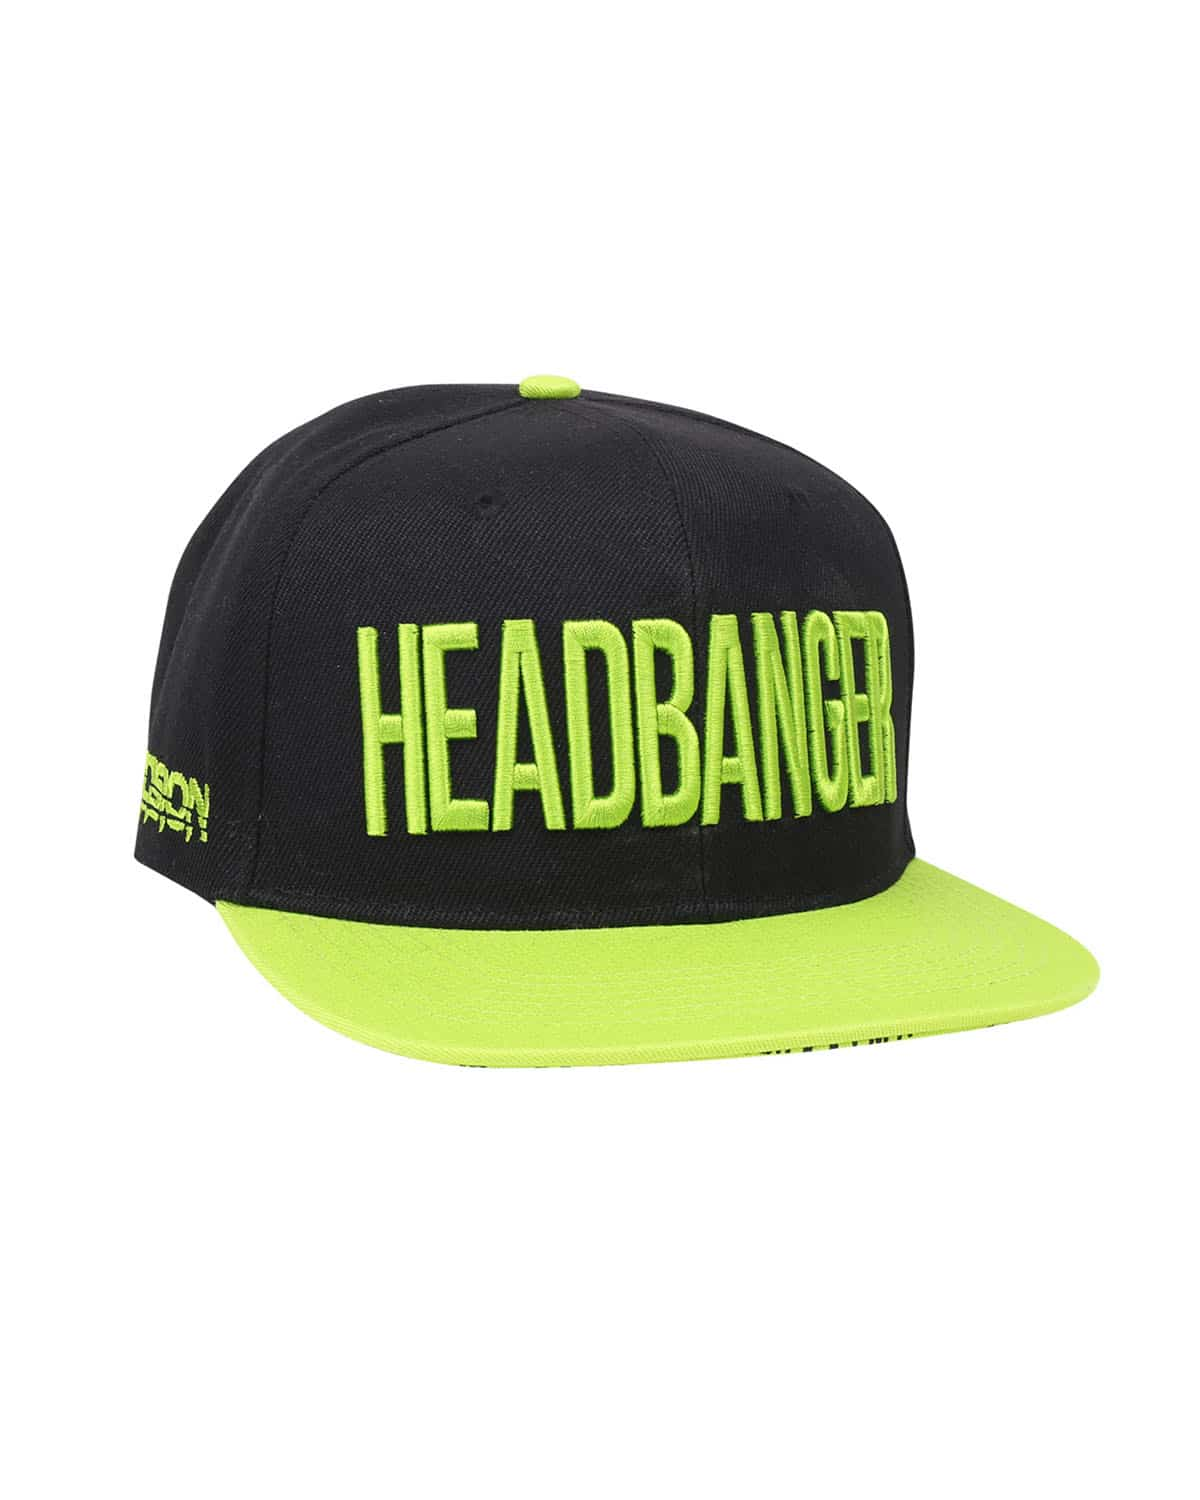 'Headbanger' Snapback - Black/Neon Green